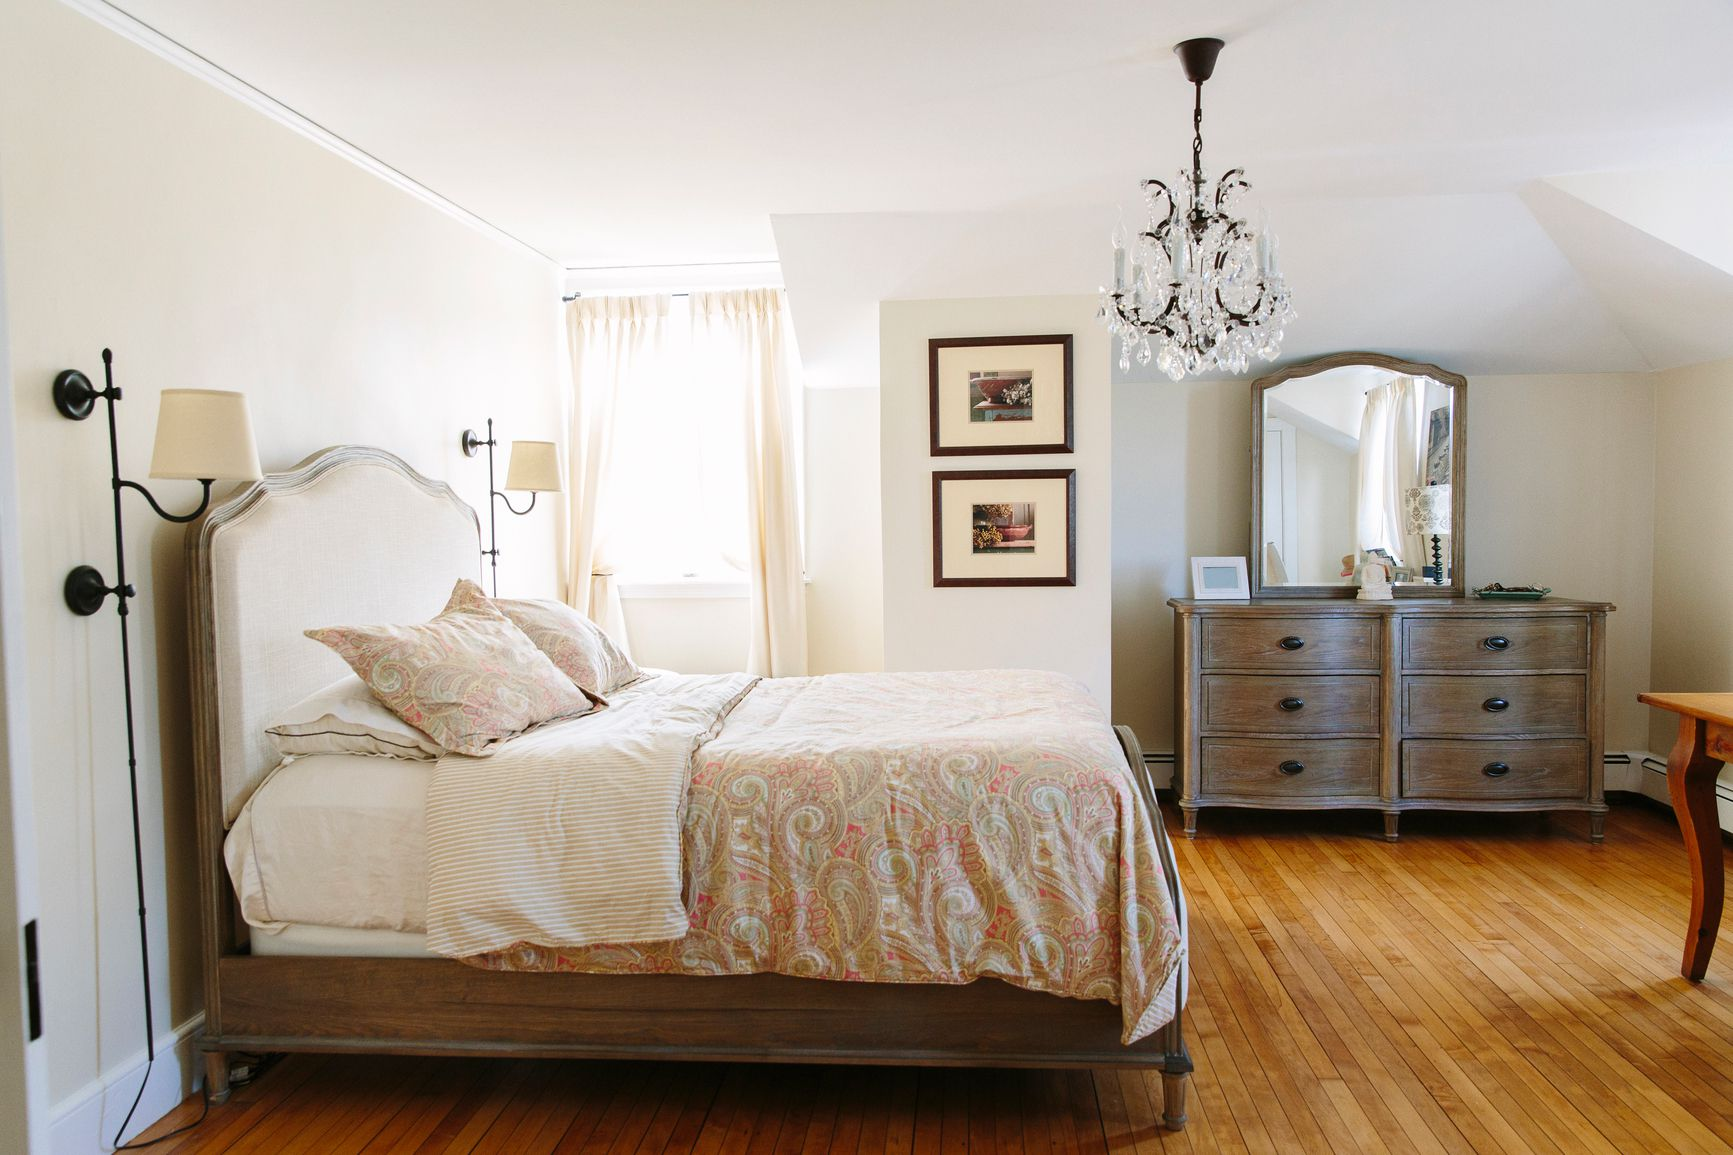 Decorating Styles- Decorating Your Home For A Casual Look